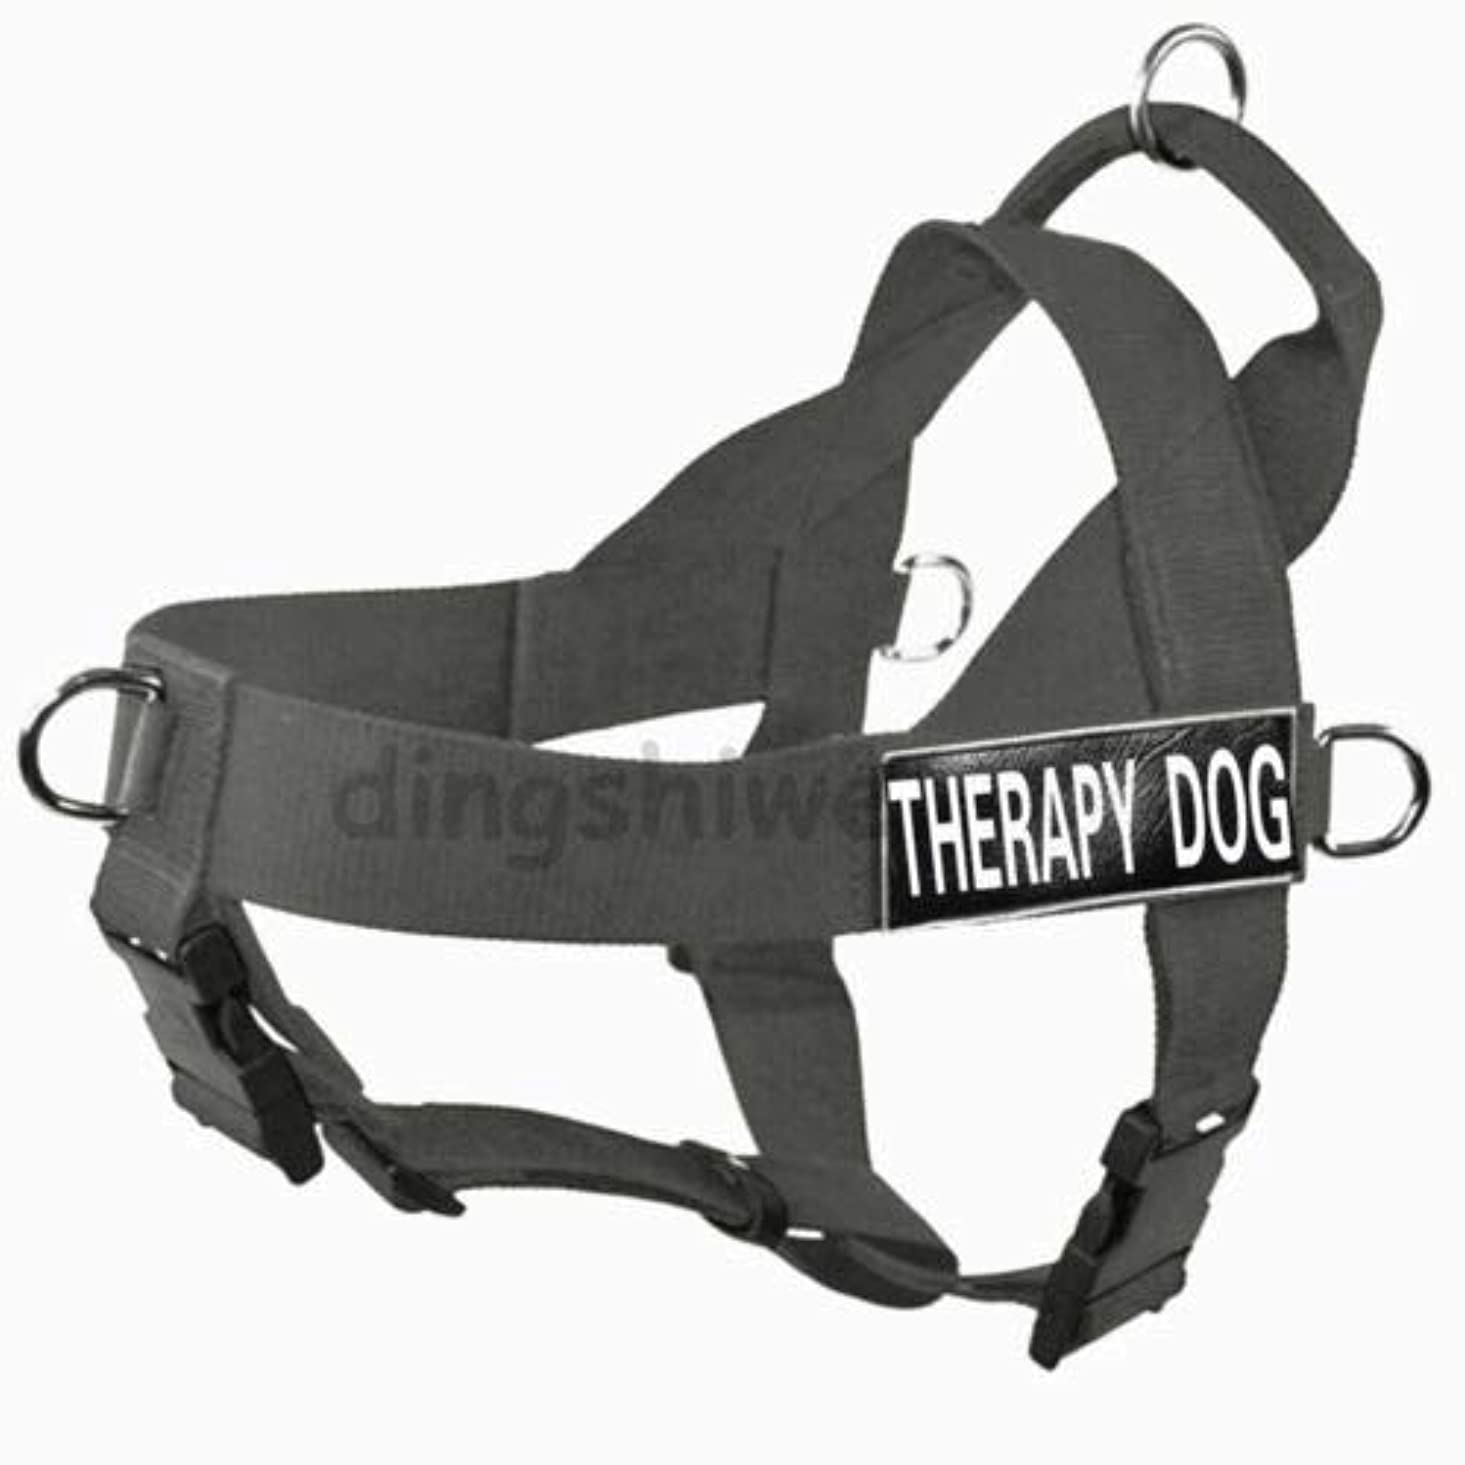 本会議クロスハブFidgetGear SERVICE DOG VEST/HARNESS Nylon With Removable label Patches for Large Dogs Grey S fit girth 24